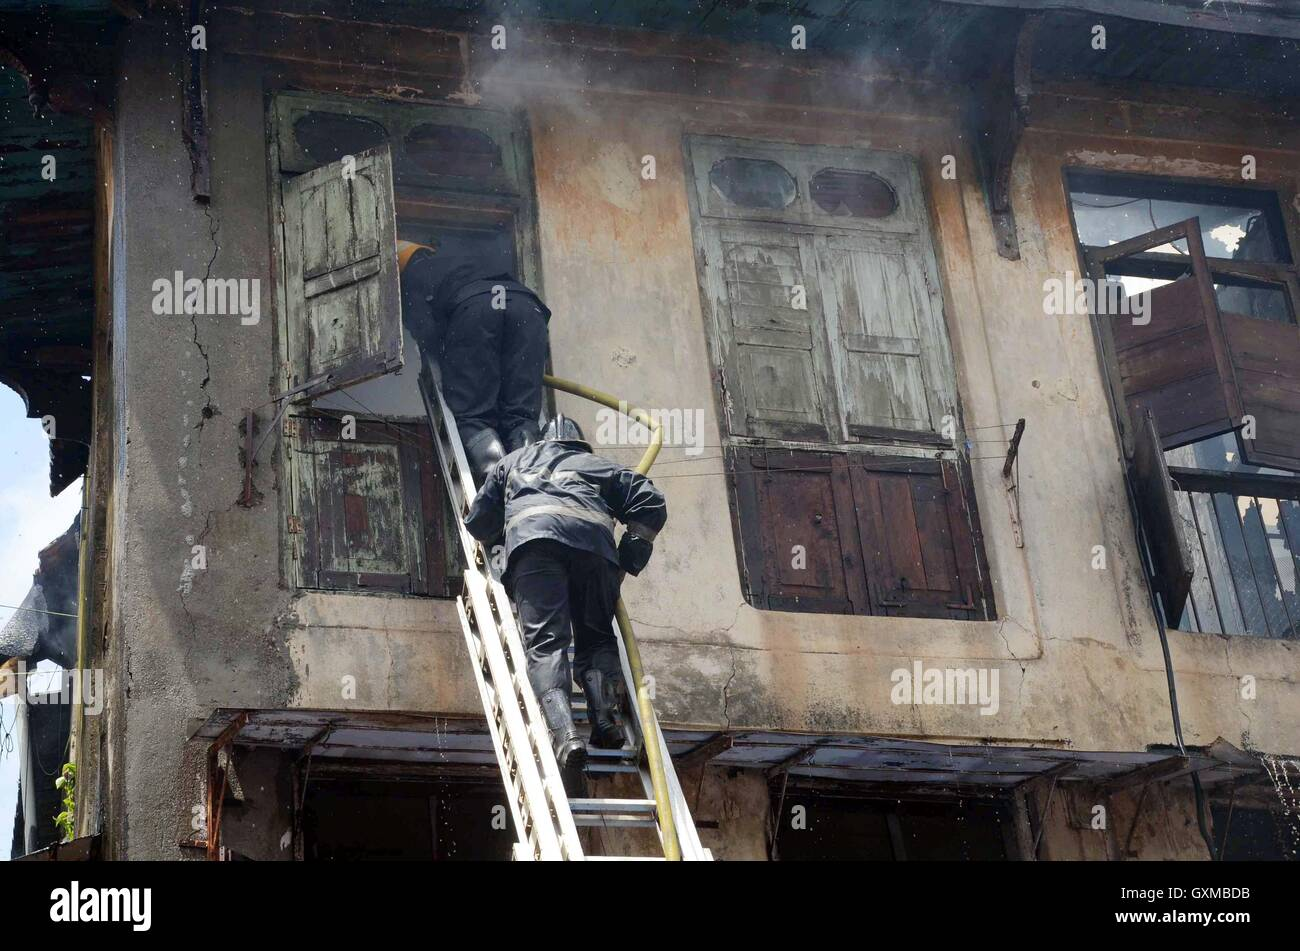 A fireman enters the second floor of the Bandookwala building at Matarpakadi Road, Mazgaon, which caught fire in - Stock Image